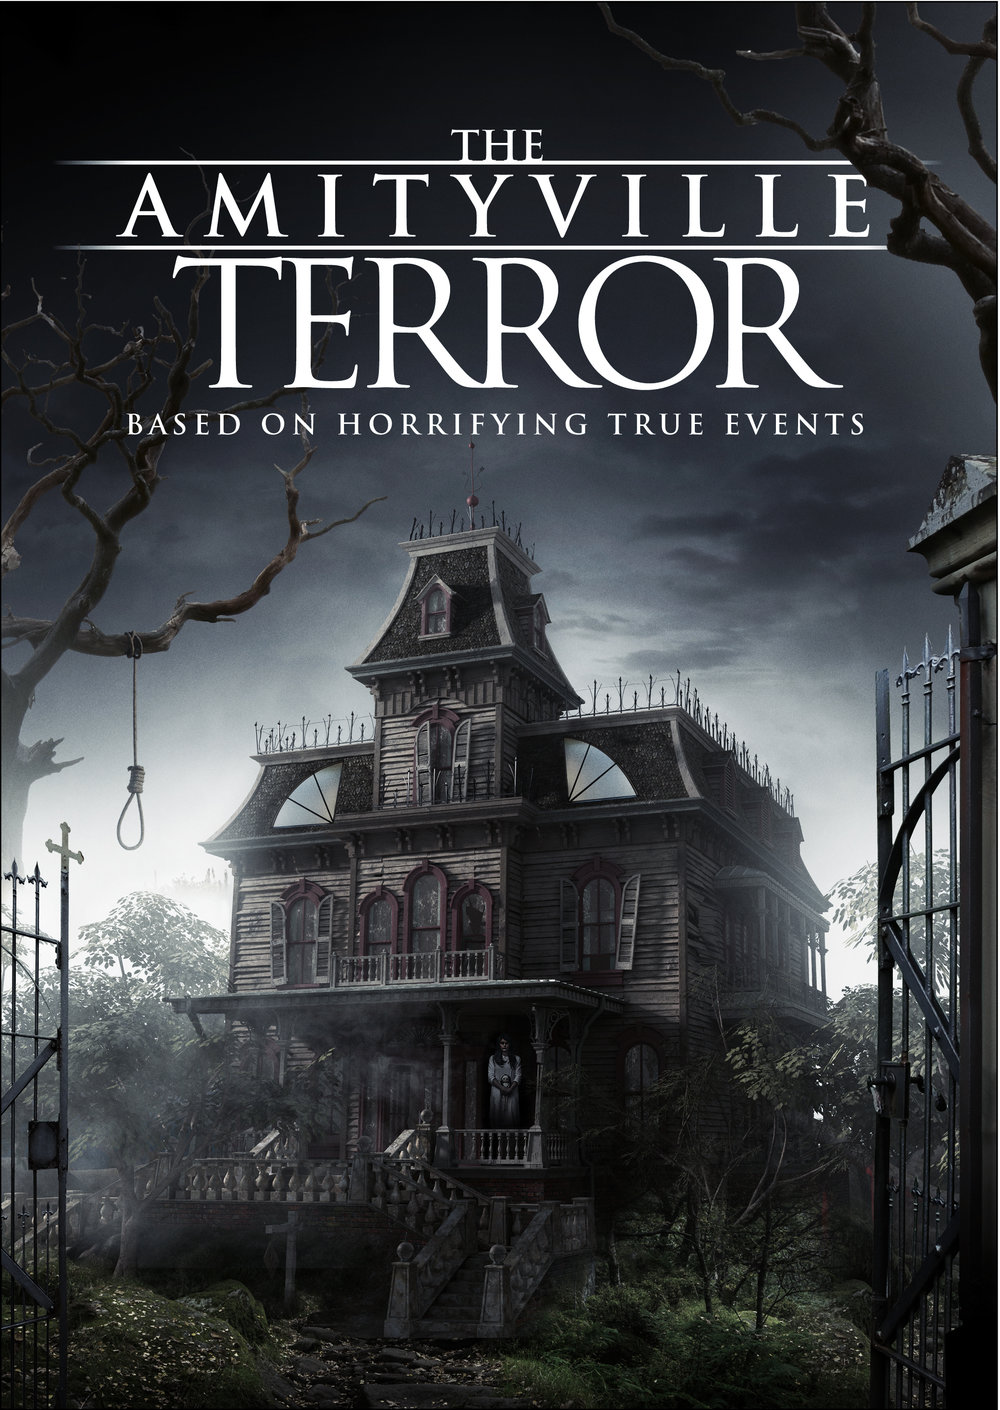 Amityville Terror   When the Jacobsen family moves to an old house in the town of Amityville, they are tormented & tortured by an evil spirit residing in the home, and trapped by the malicious townspeople who want to keep them there.